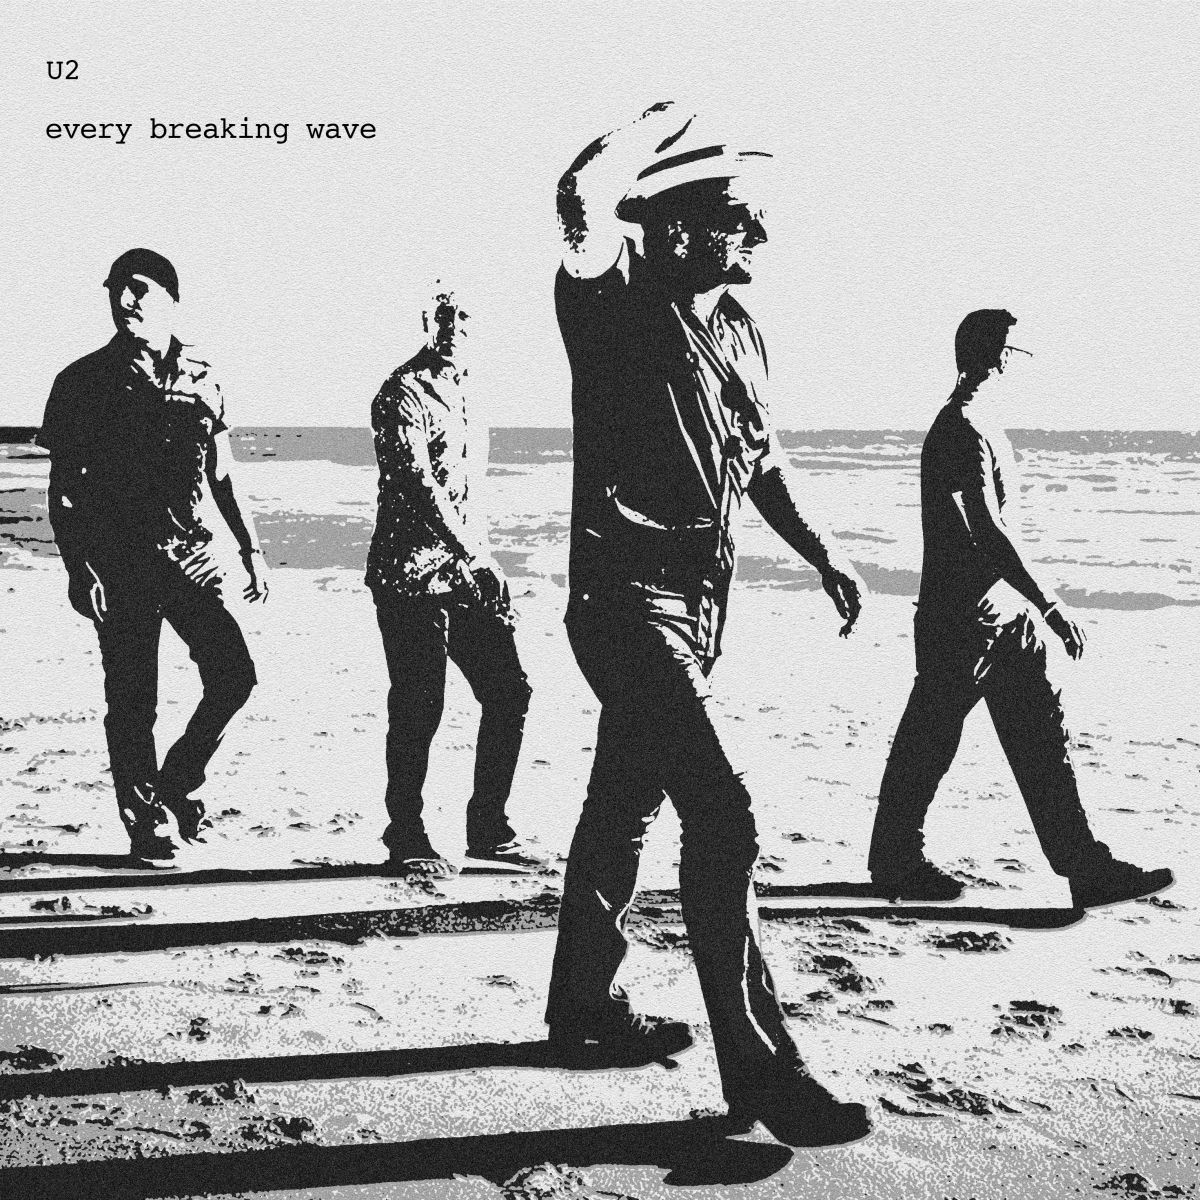 U2 EveryBreakingWave single AW